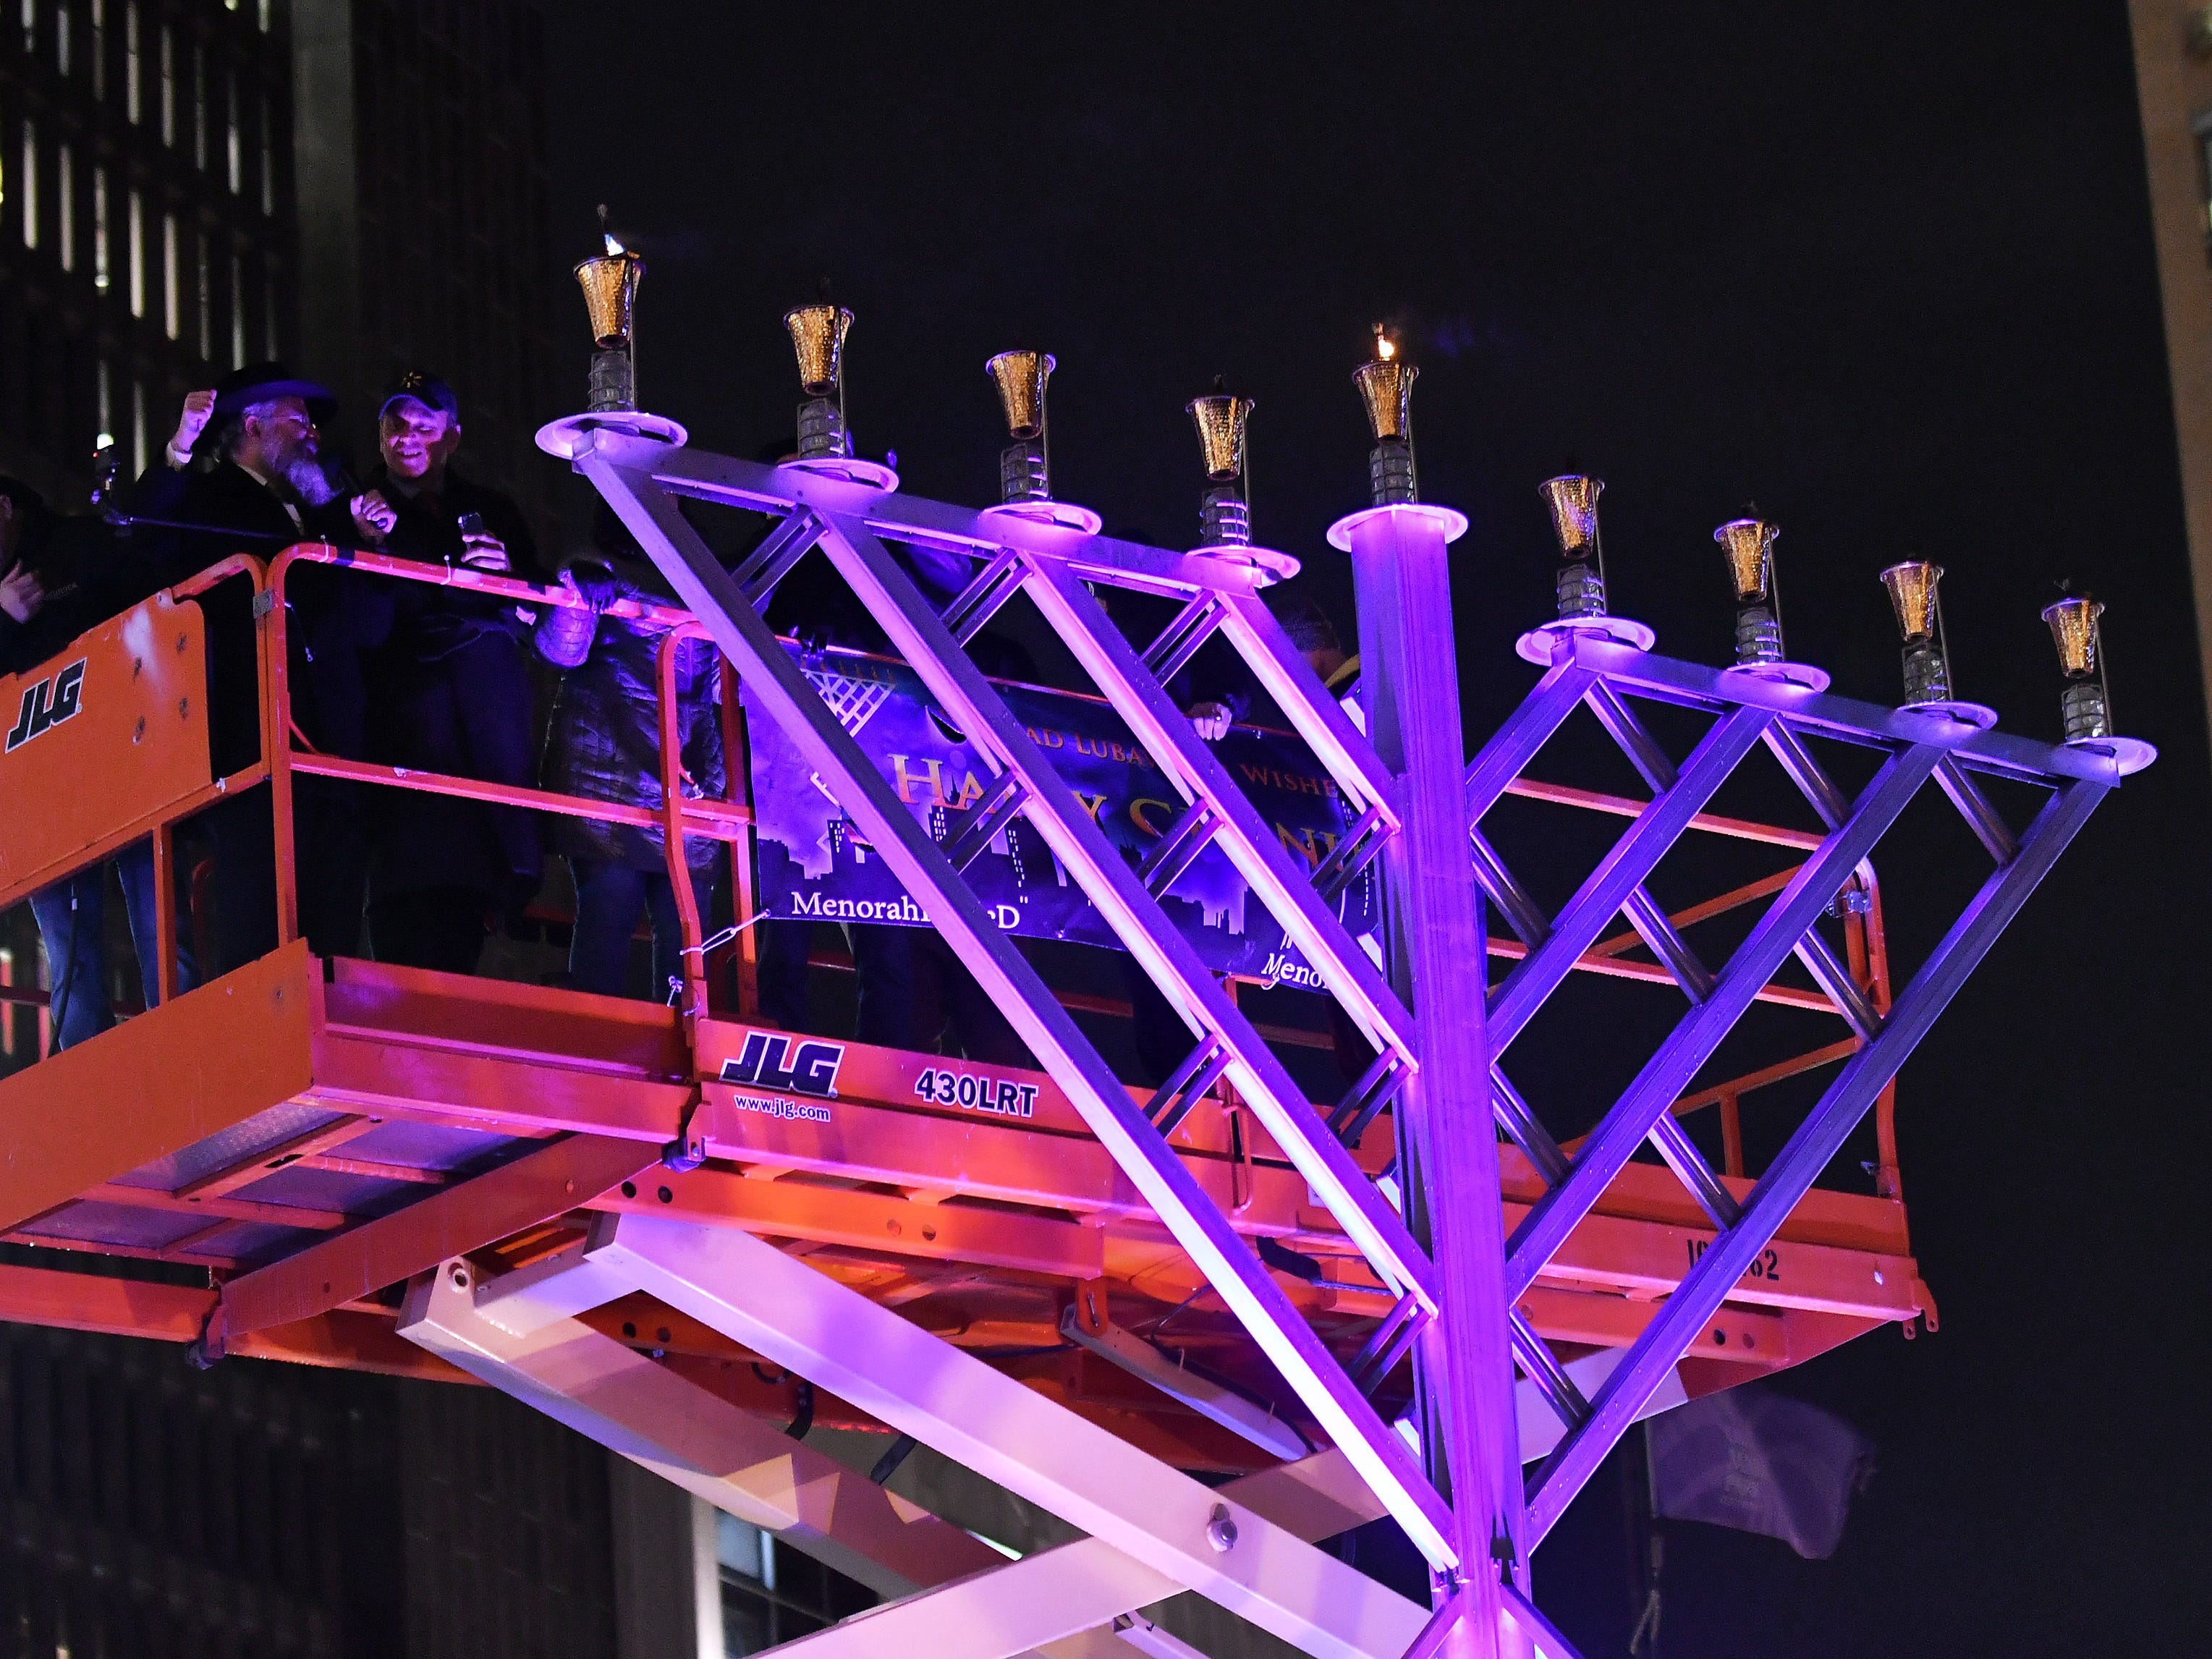 Rabbi Kasriel Shemtov, left, and other officials light the menorah at the Menorah in the D celebration at Campus Martius in Detroit on Dec. 2, 2018.